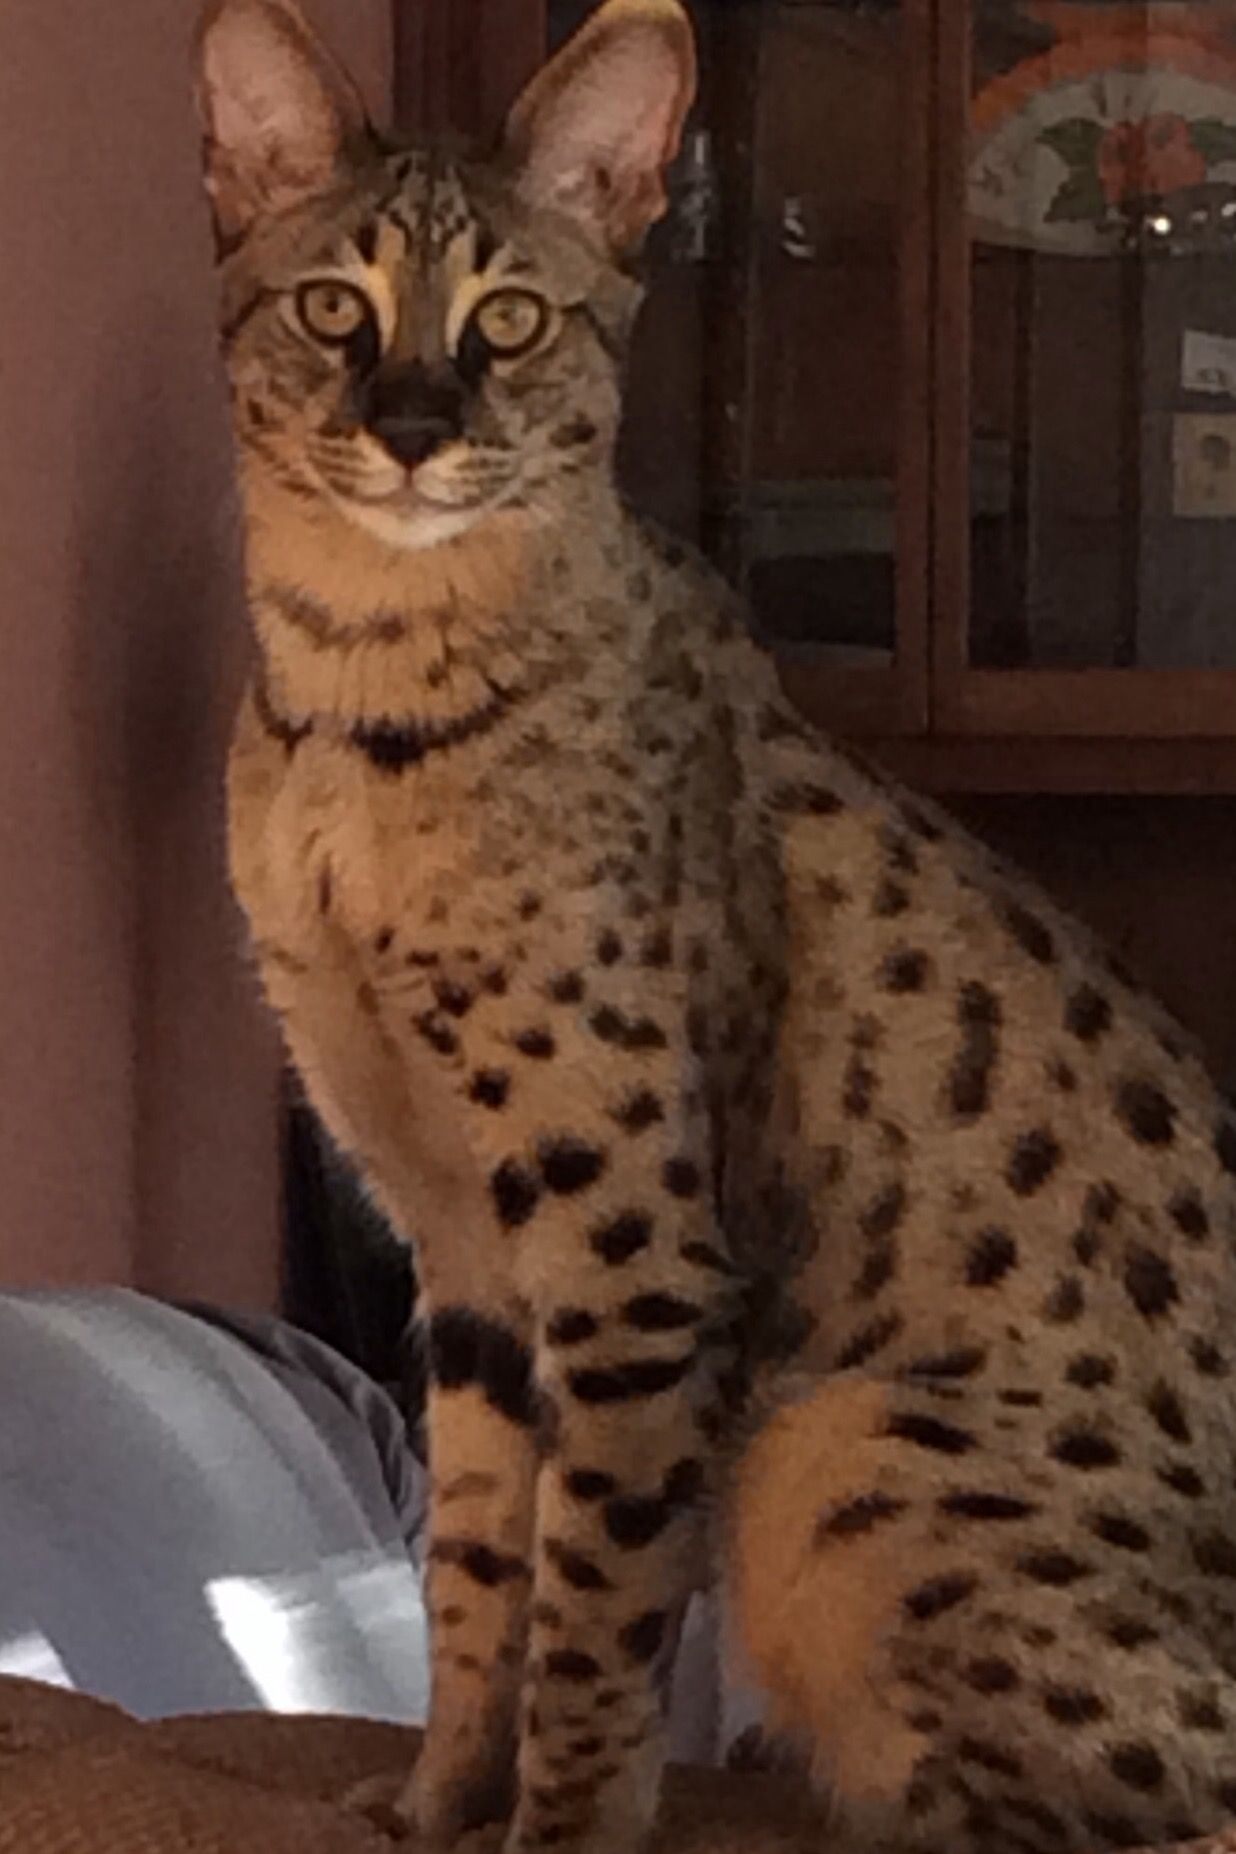 Own a savannah cat. actually saw one of these in